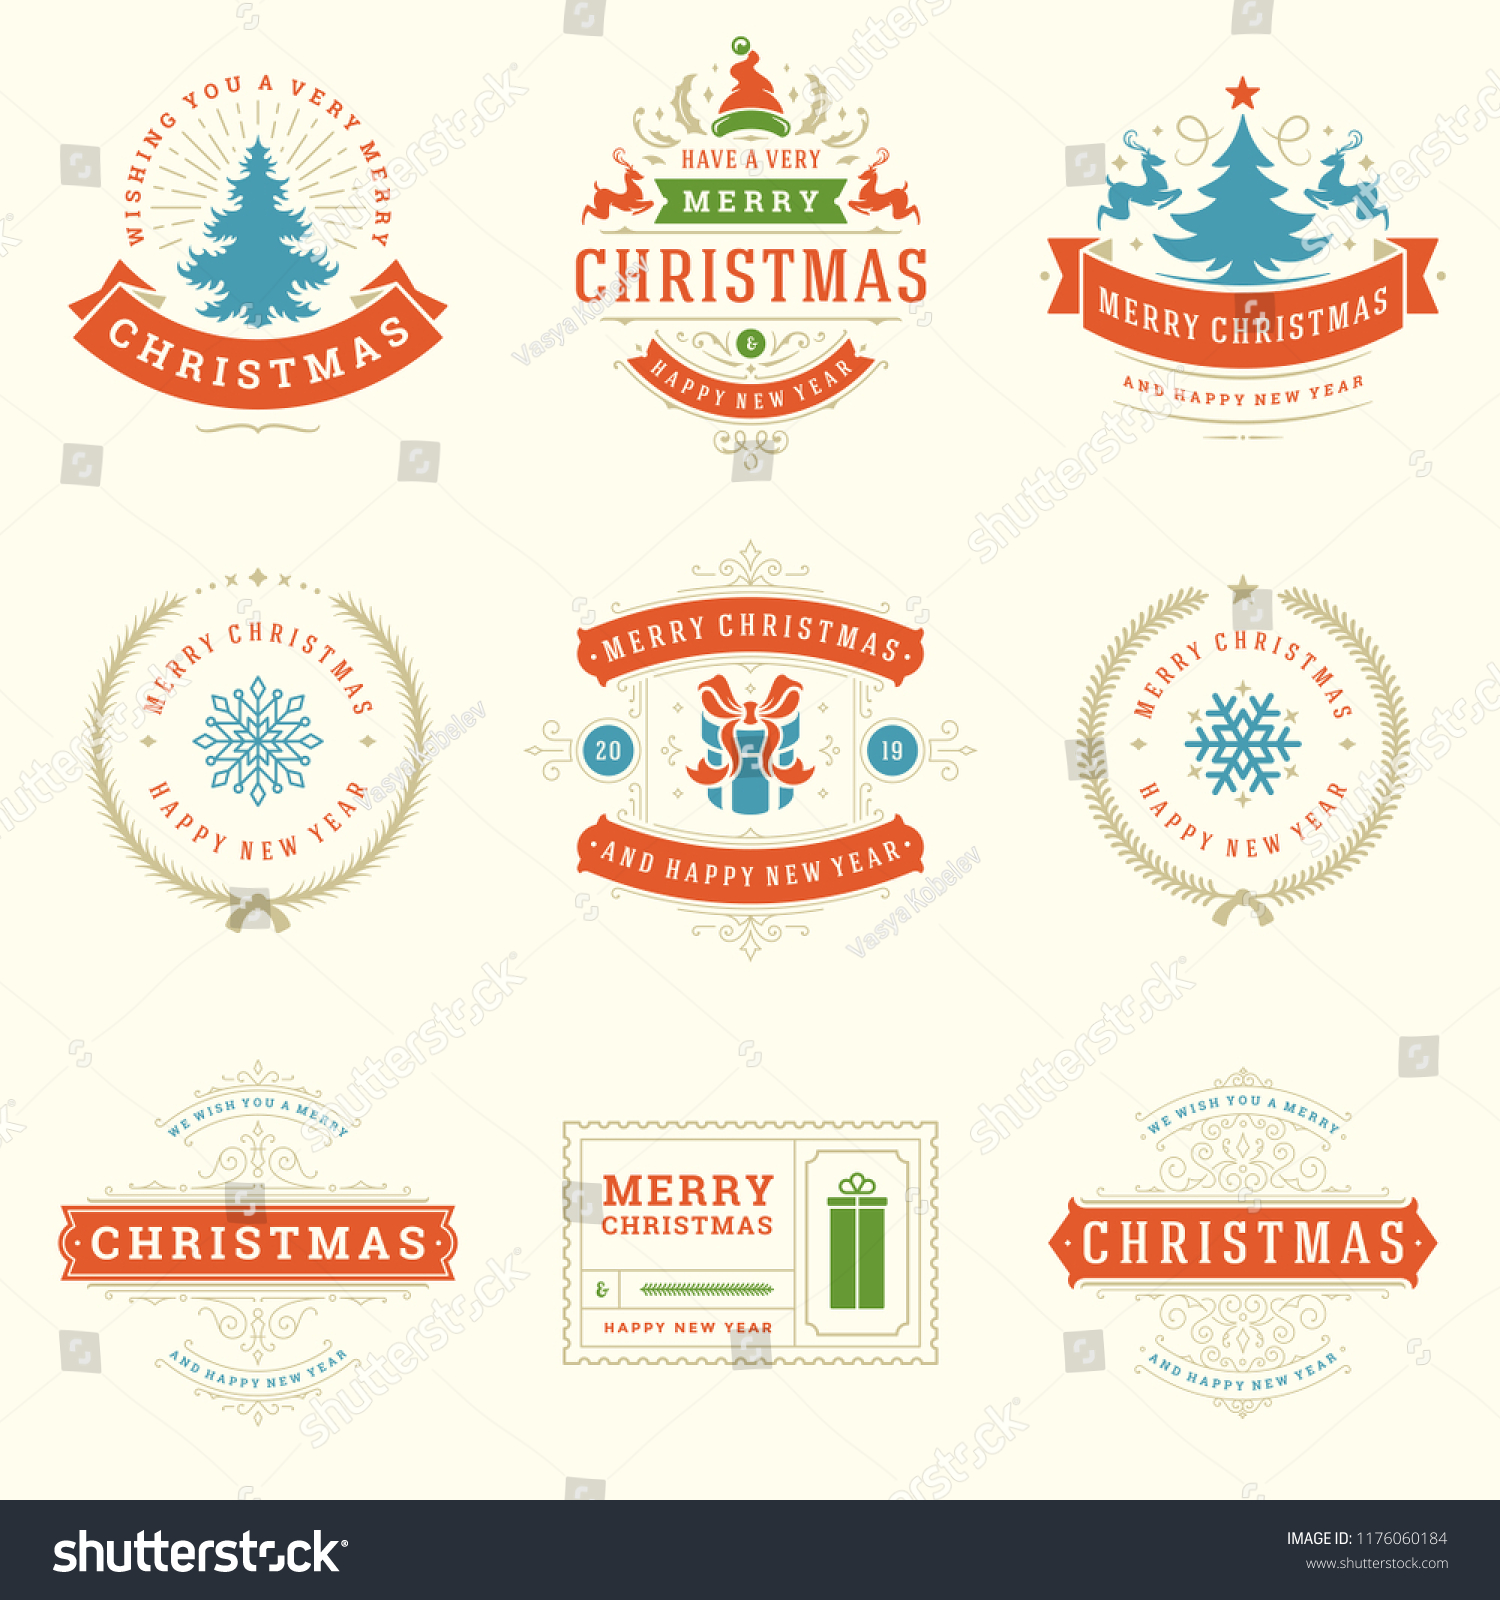 christmas labels and badges vector design elements set merry christmas and happy new year wishes